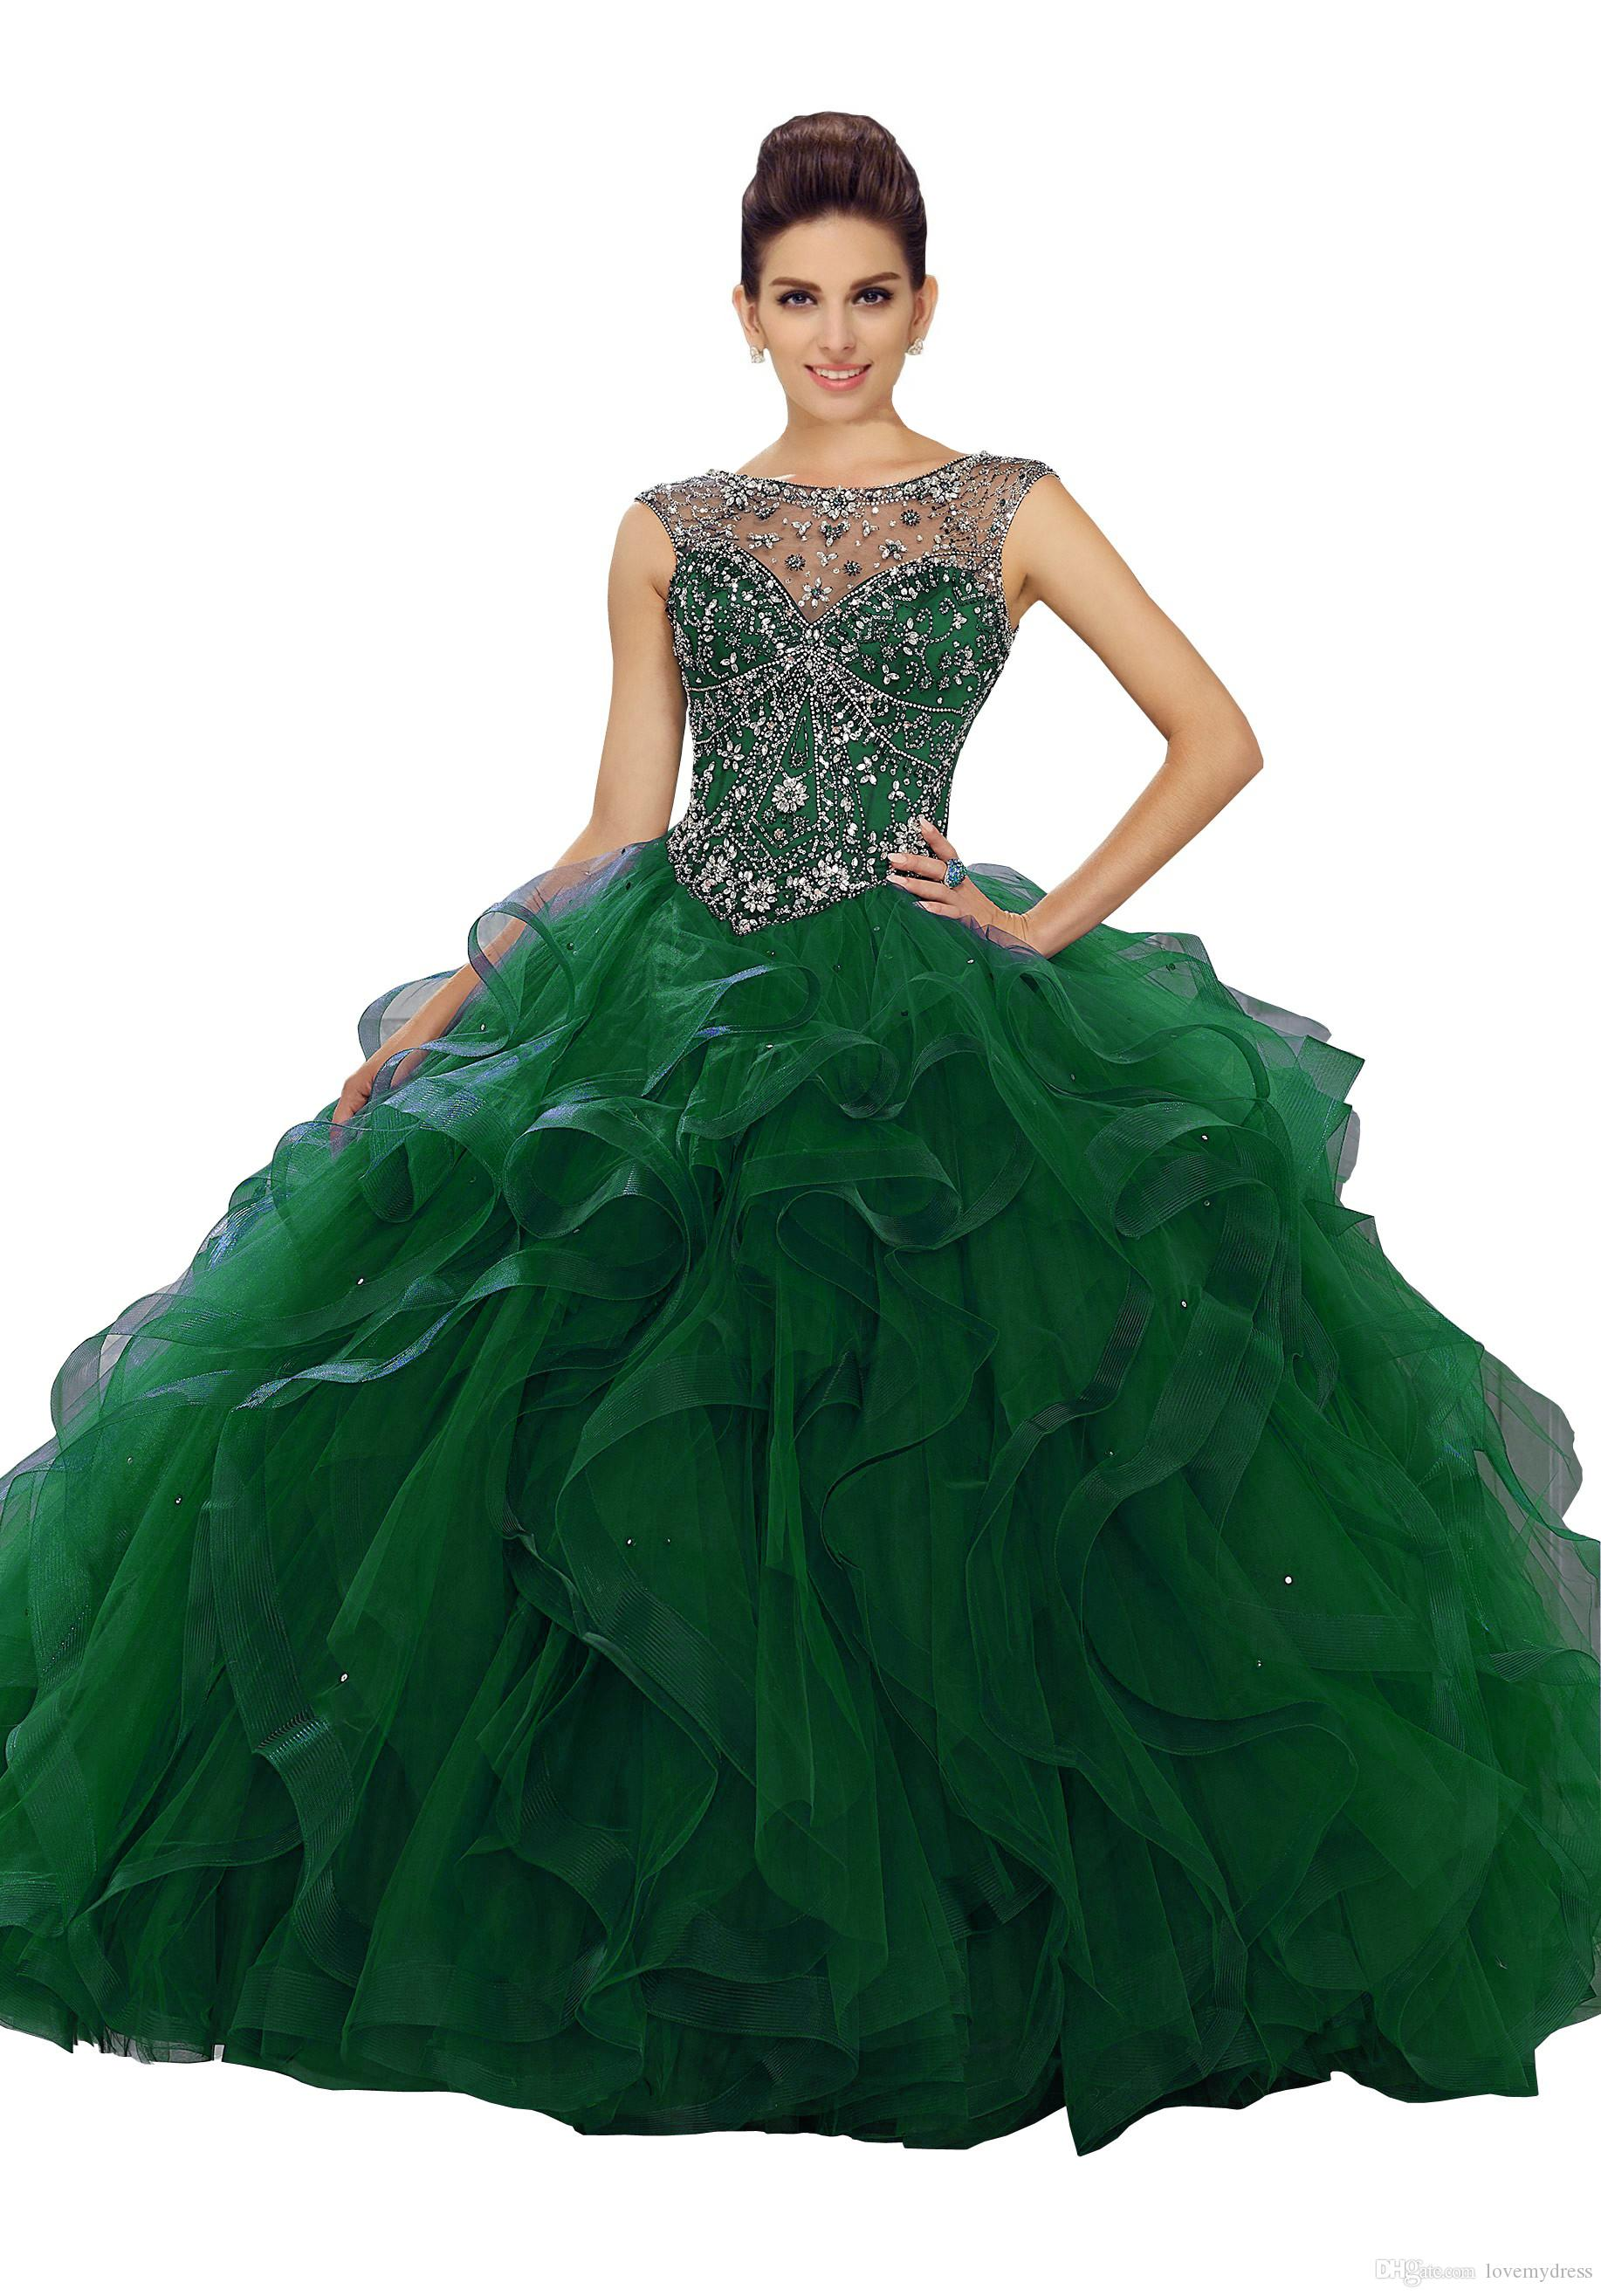 Acquista Squisito Verde Quinceanera Prom Abito Ball Gowns Ruffles Tulle Cap  Maniche Corte Bateau Sheer Neck Crystal Beaded Hollow Back Abiti Da Sera A  ... dfbb8ede87f